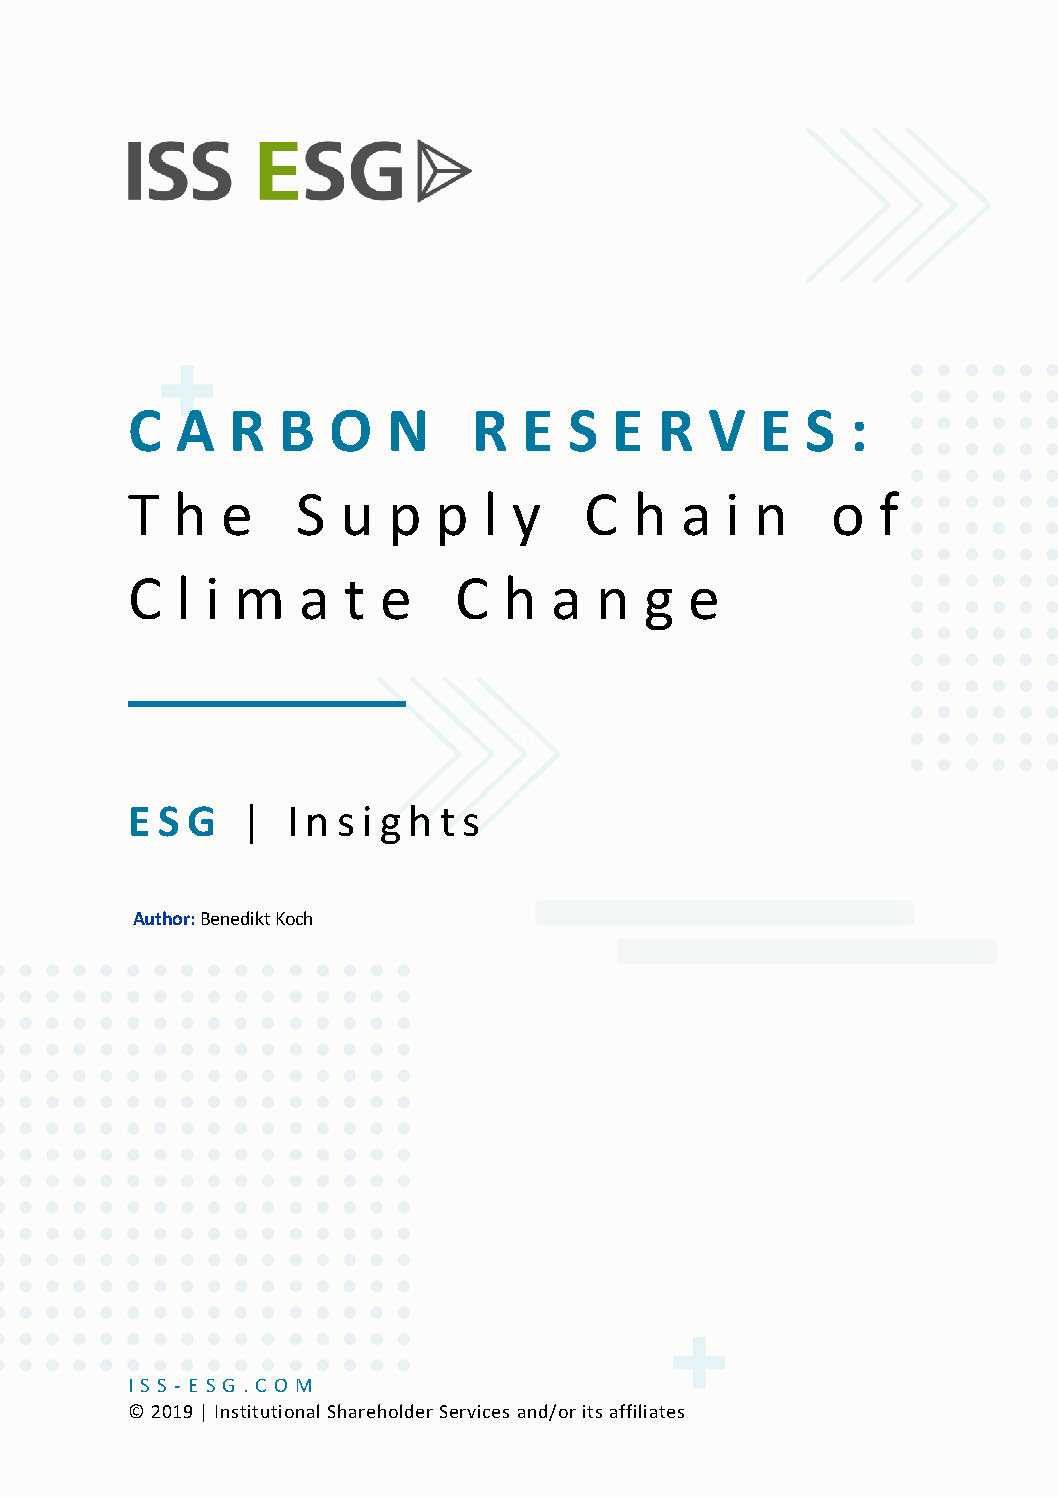 iss_esg_insights_carbon_reserves_cover